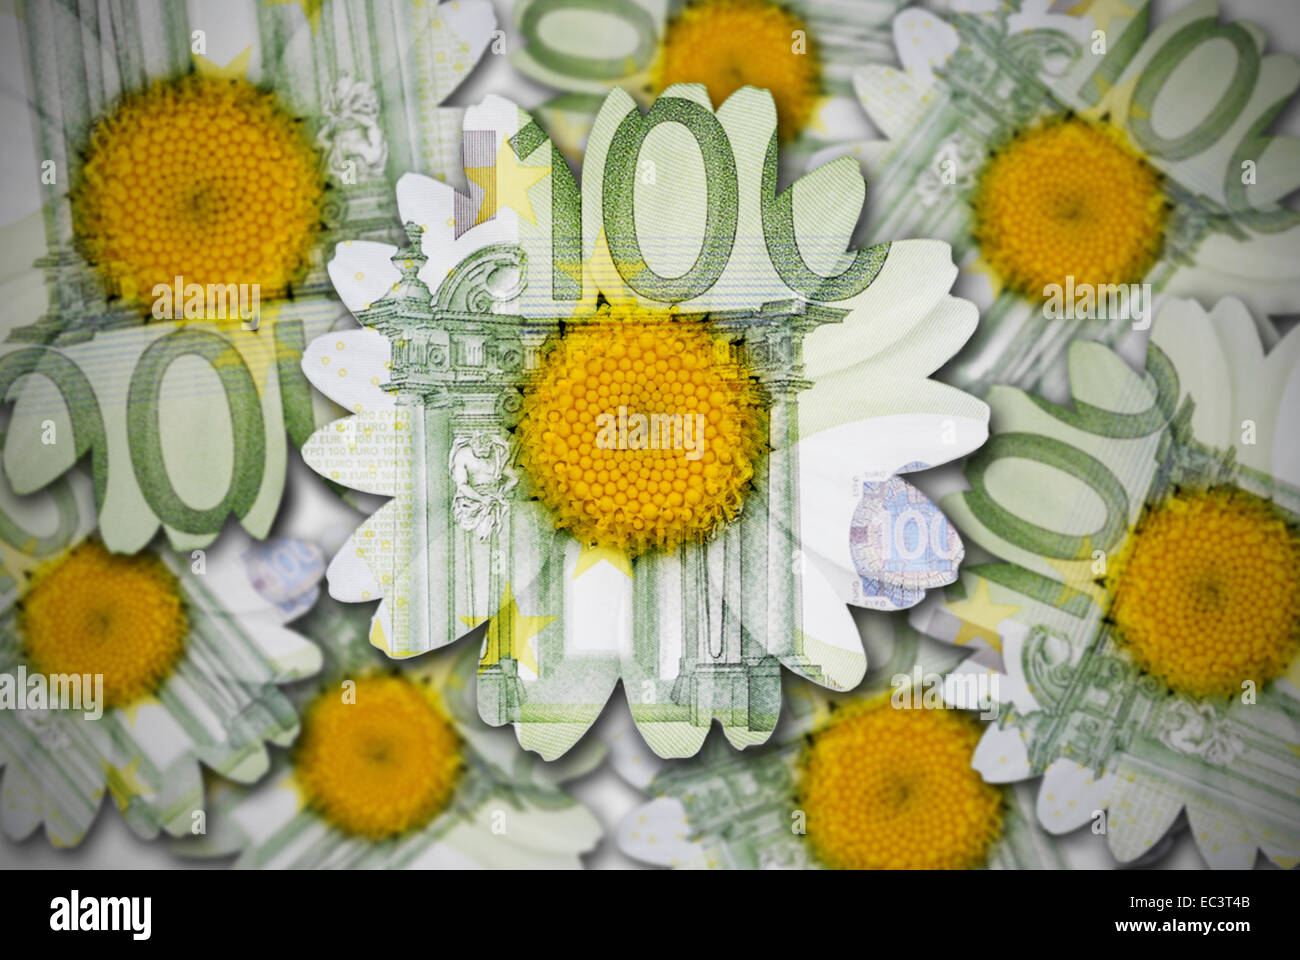 Flowers made of euro banknotes, sustainability - Stock Image